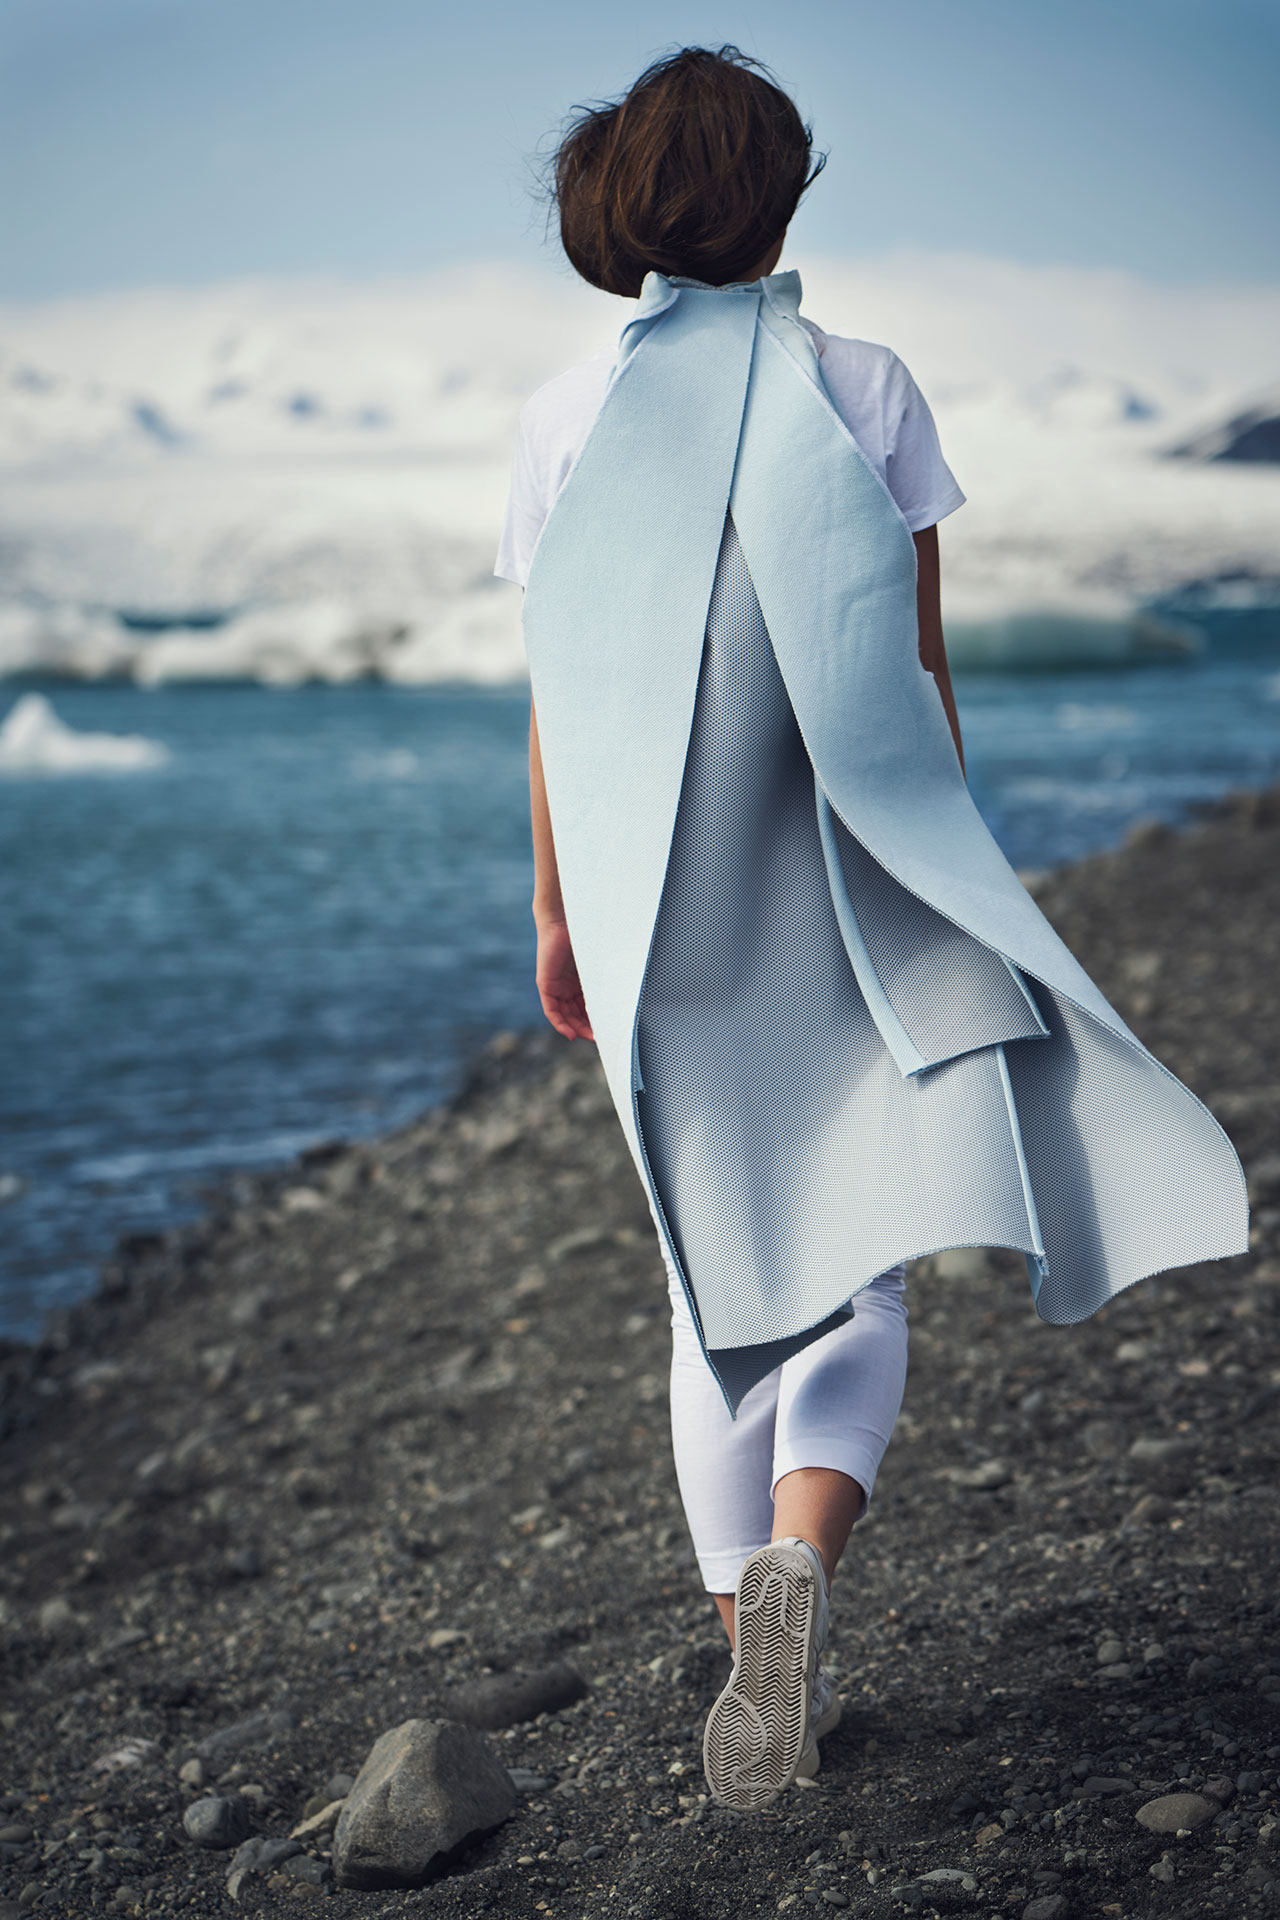 Félicie Eymard, Chrysalid Coat, from Metamorphosis Collection. Photo by Julien Hayard.